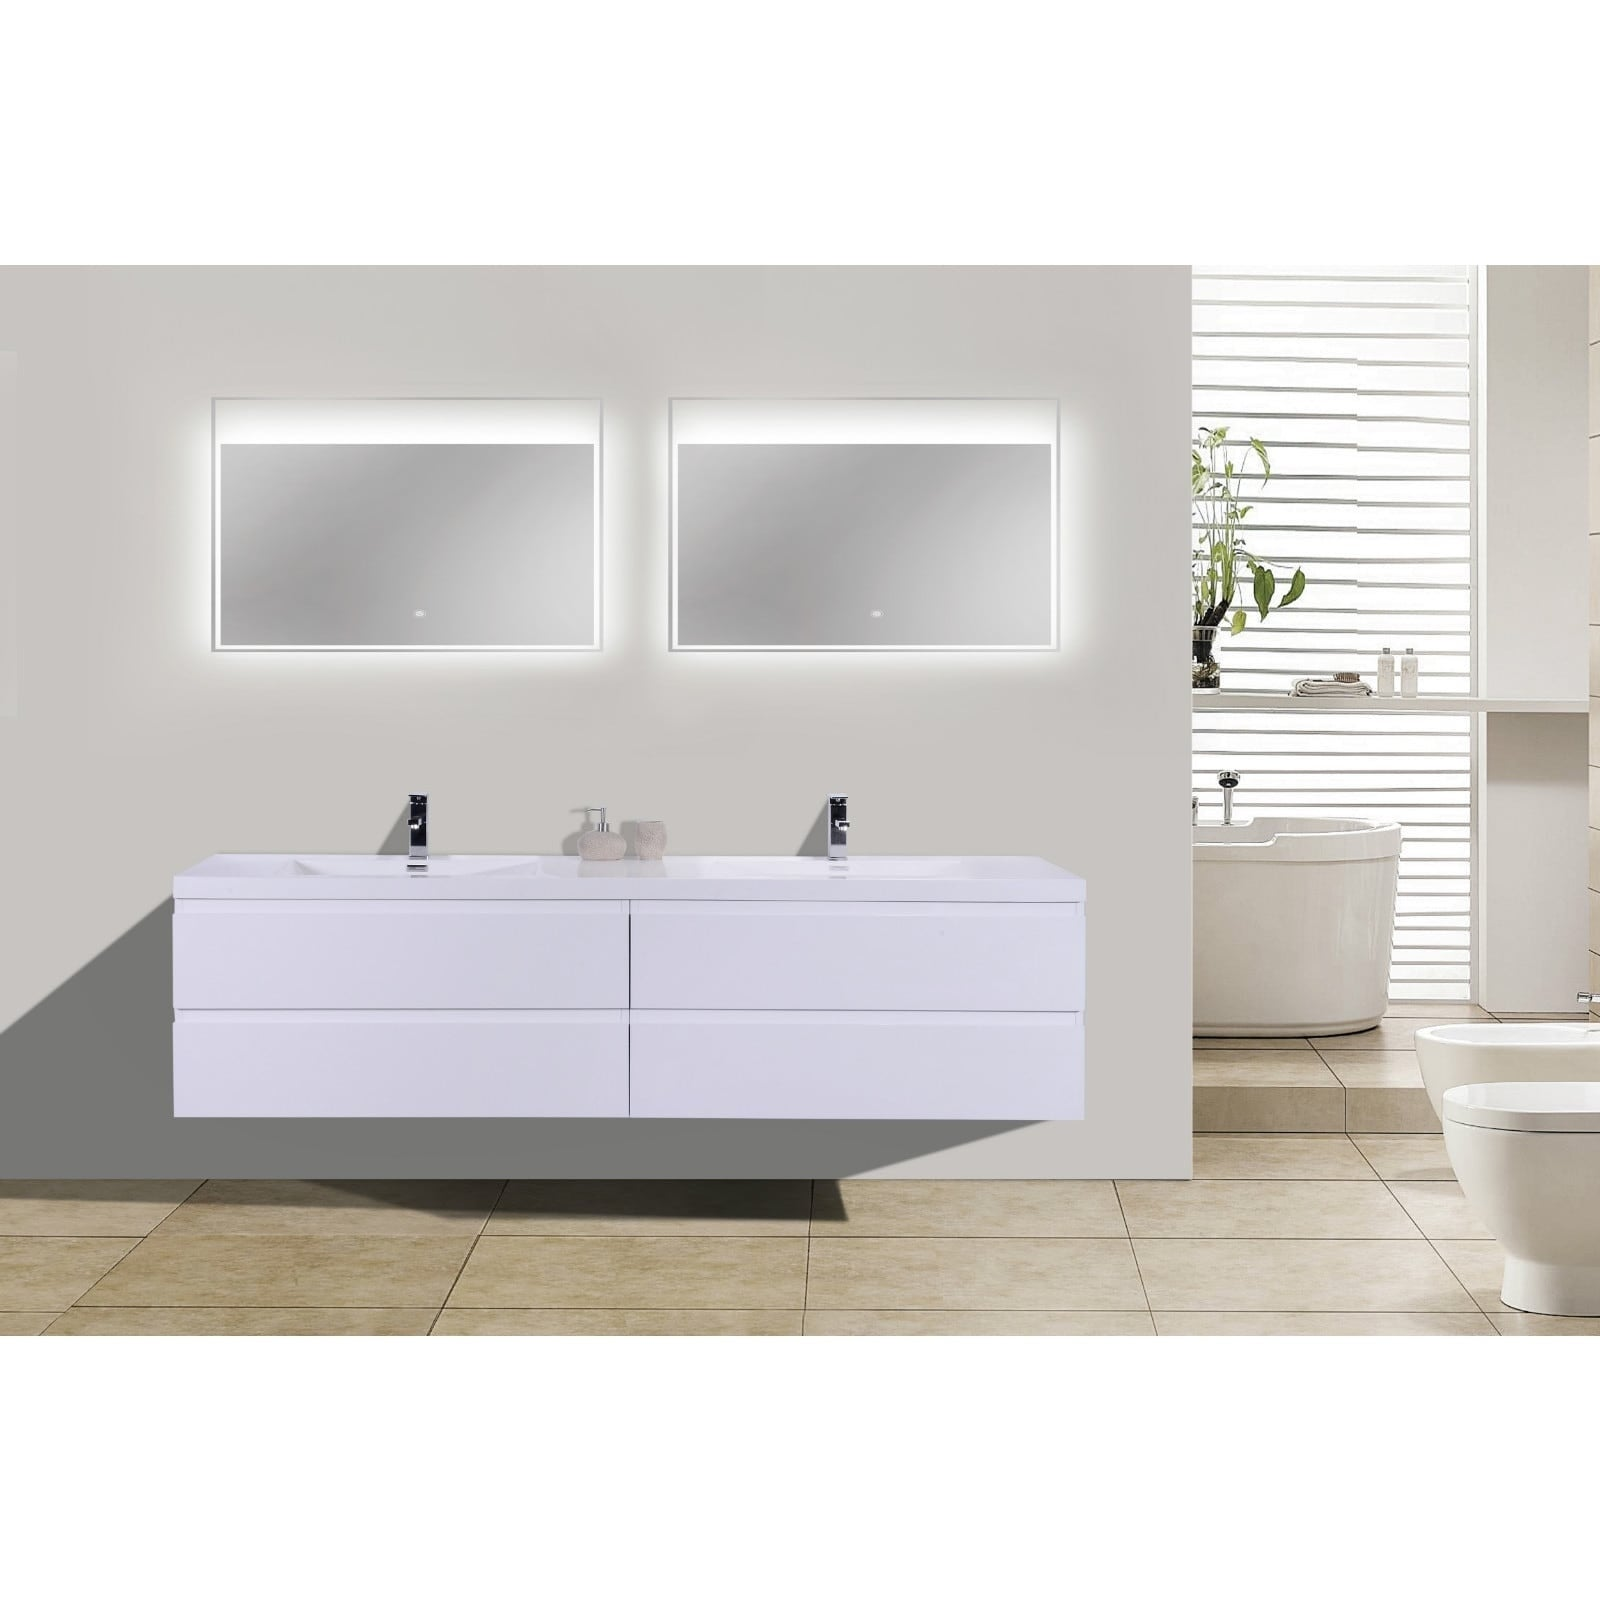 Shop moreno bath mob 84 inch wall mounted modern bathroom vanity with reinforced acrylic double sink free shipping today overstock com 14725309